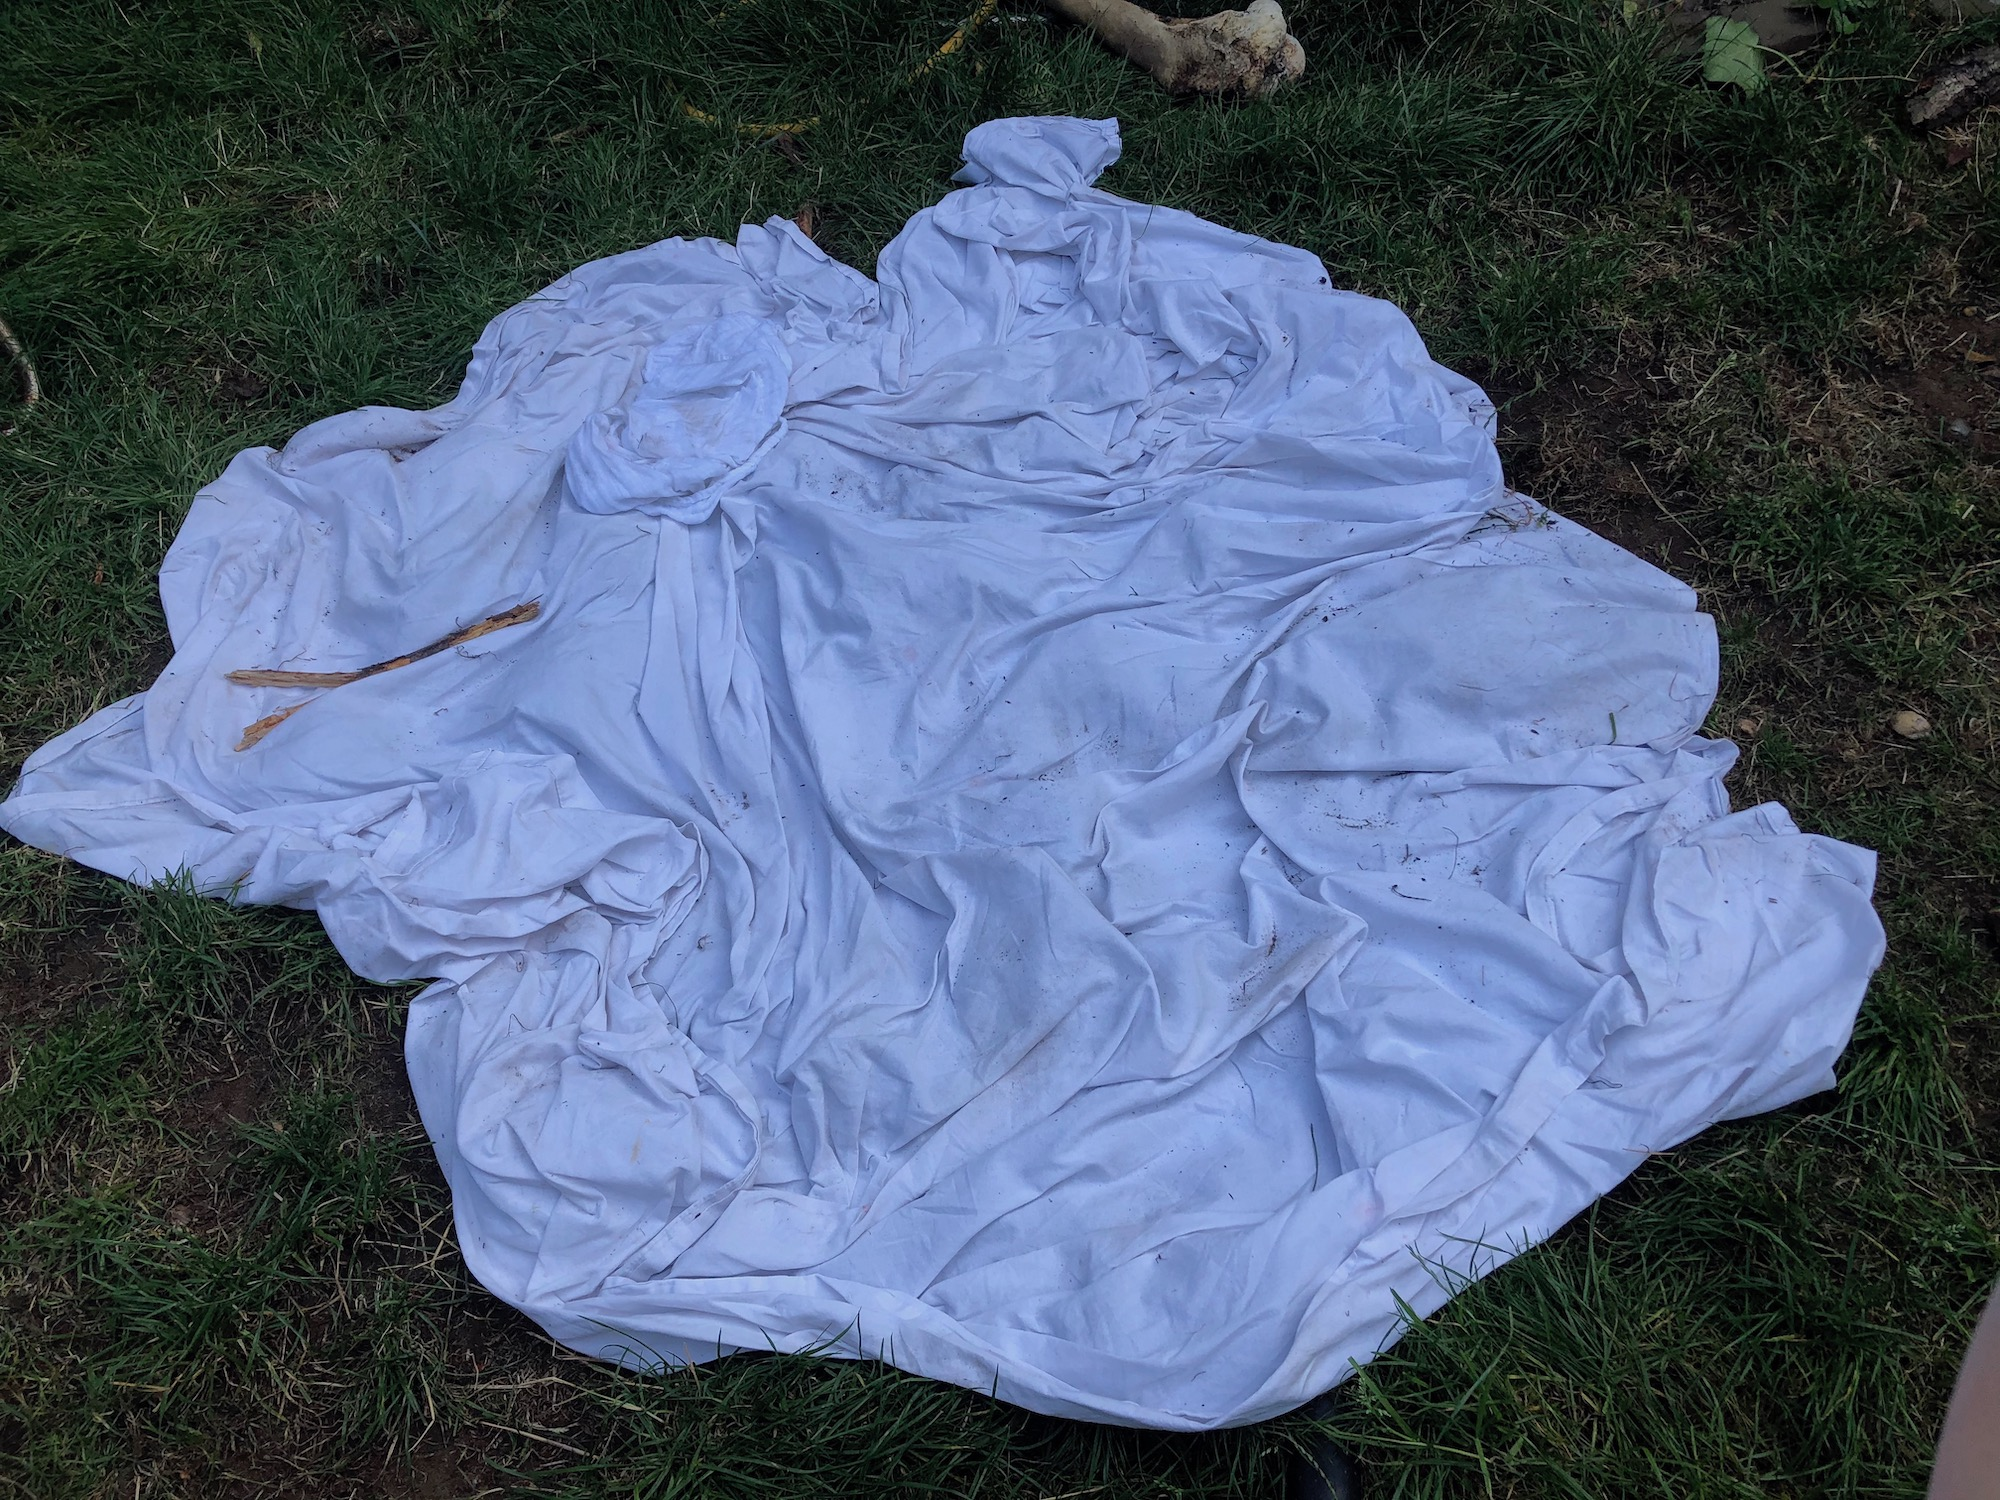 Blanket in the garden.